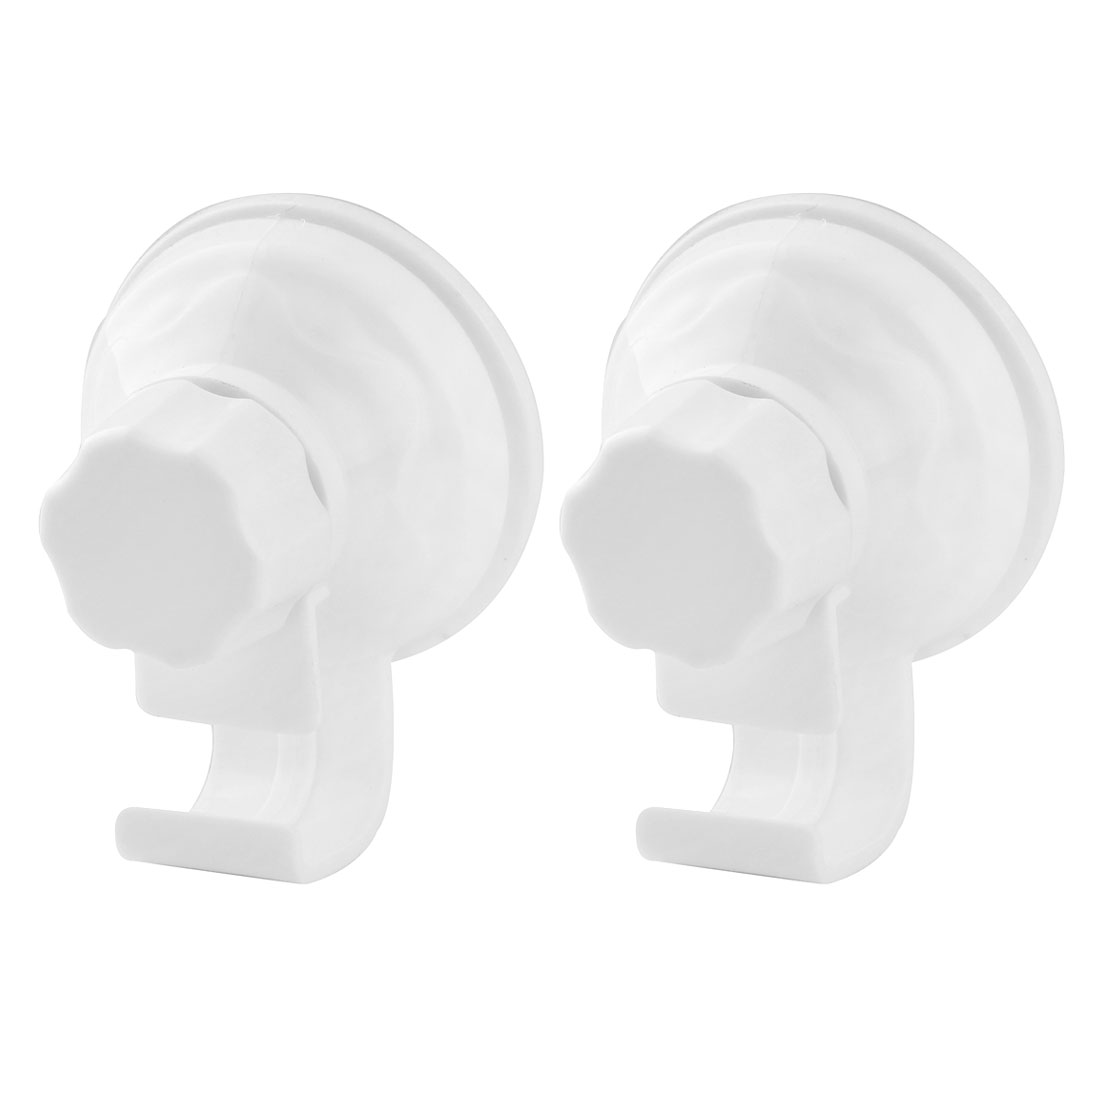 Home Bathroom Wall Mount Plastic Suction Cup Hook Hanger White 2 Pcs